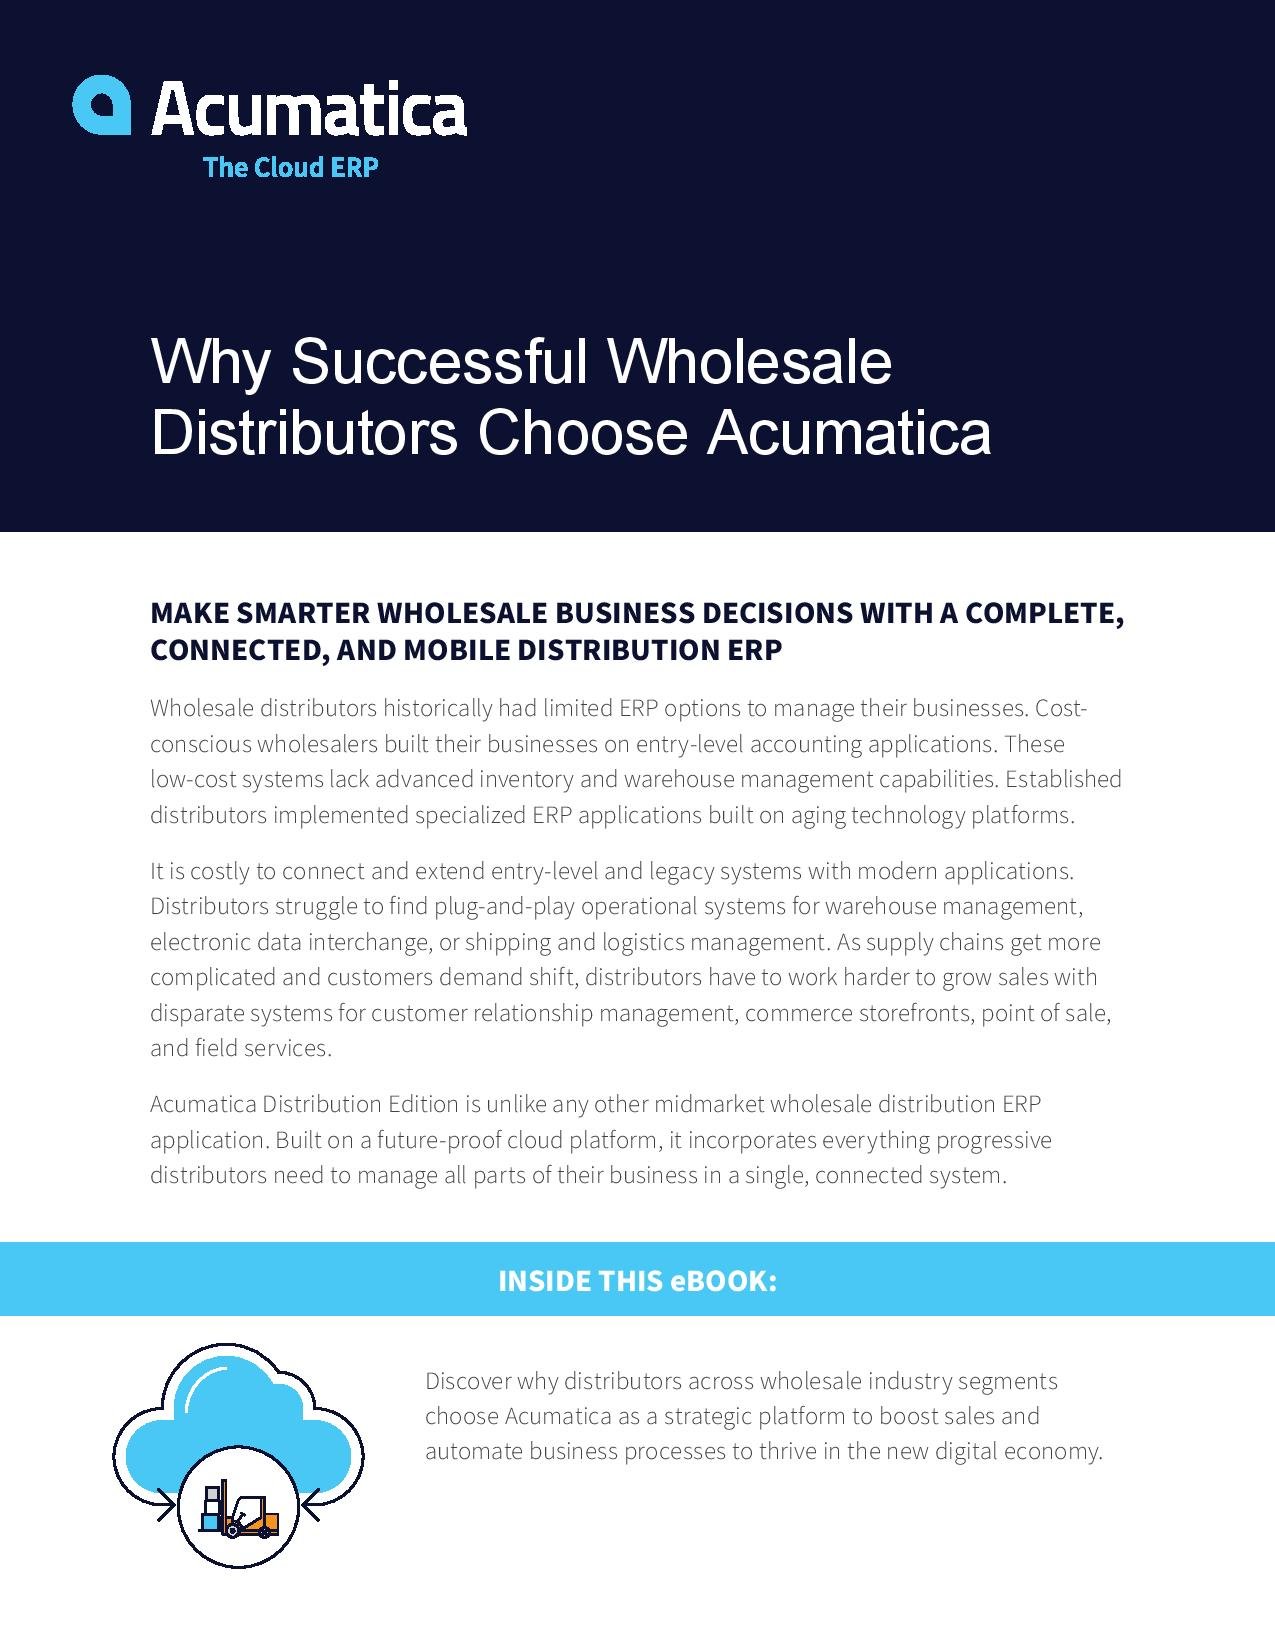 Best ERP for Distributors: Why Successful Companies Choose Acumatica, page 0